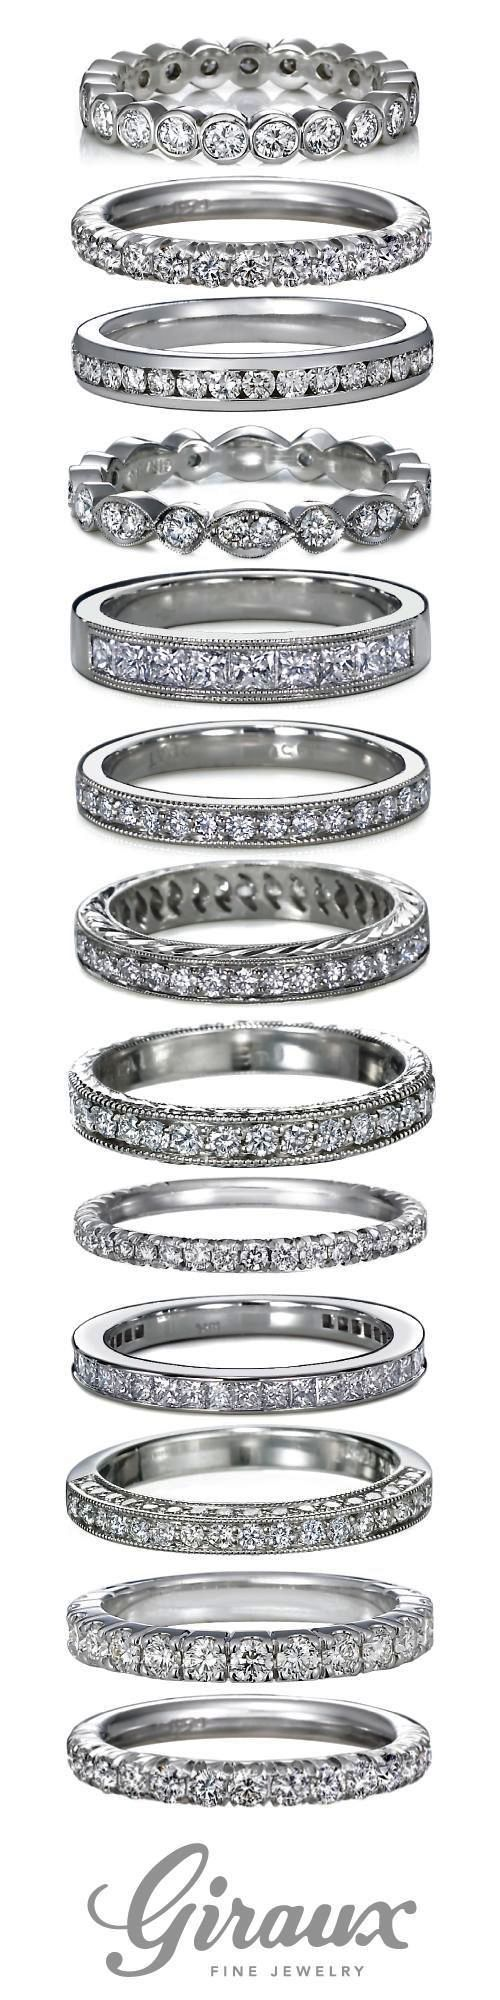 Jewelry Stores Near Me That Buy & Gold Jewellery Near To